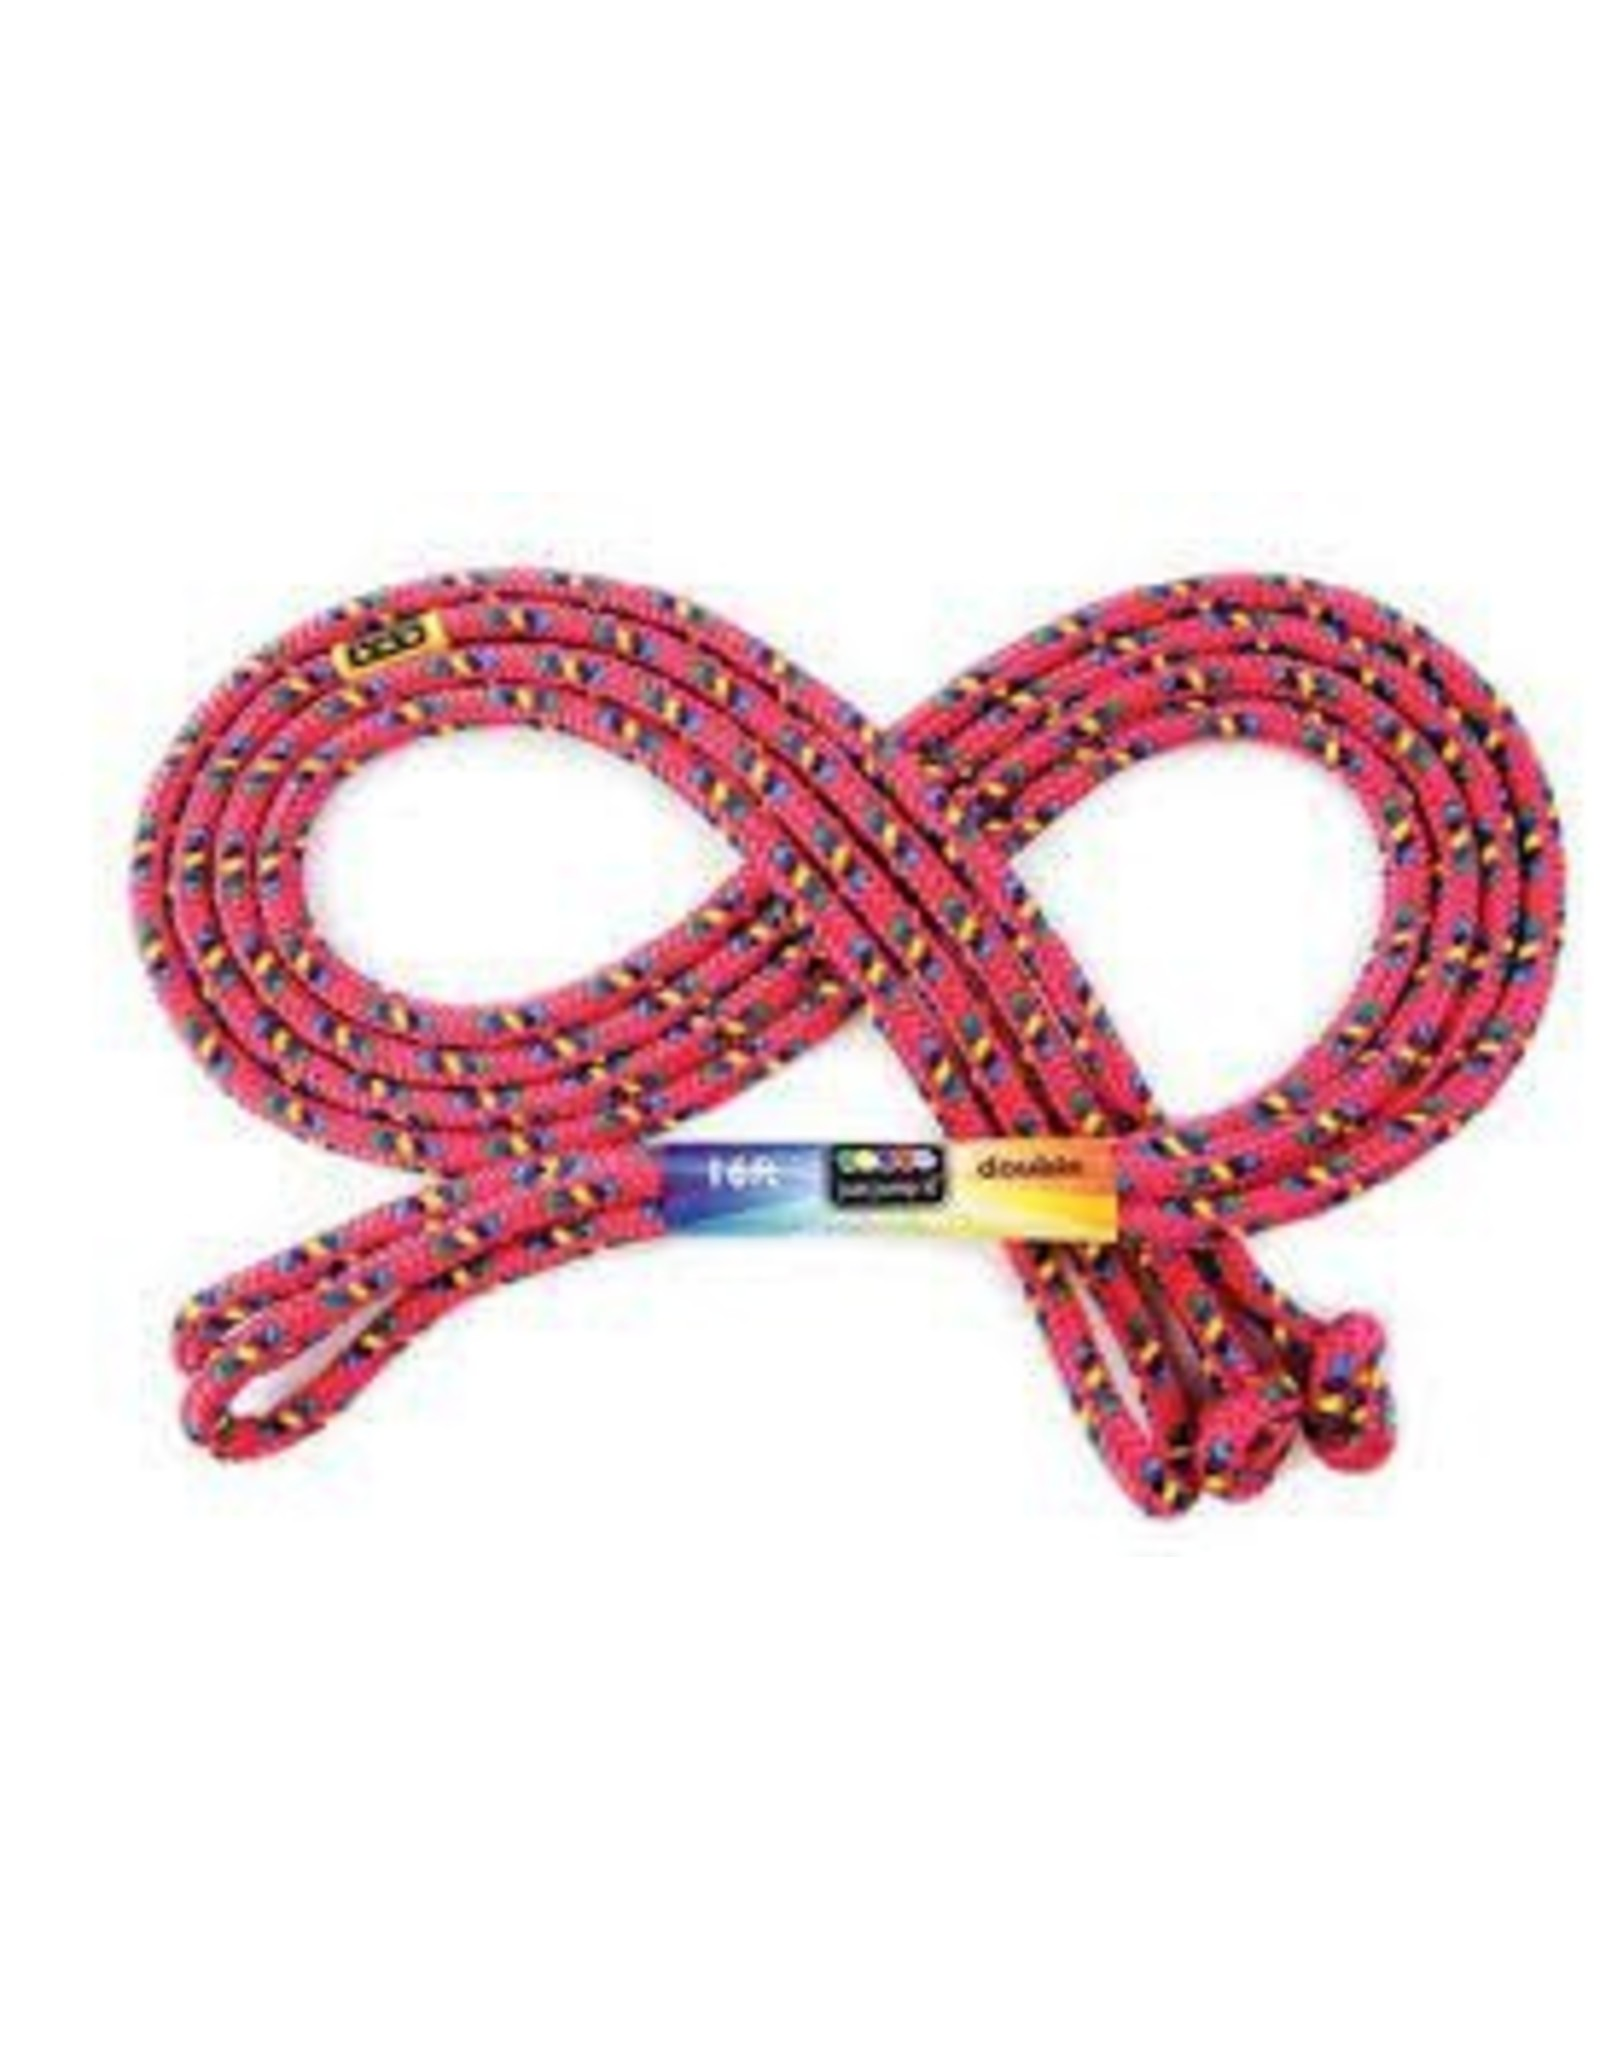 Just Jump It 16' Double Dutch Red Confetti Jump Rope